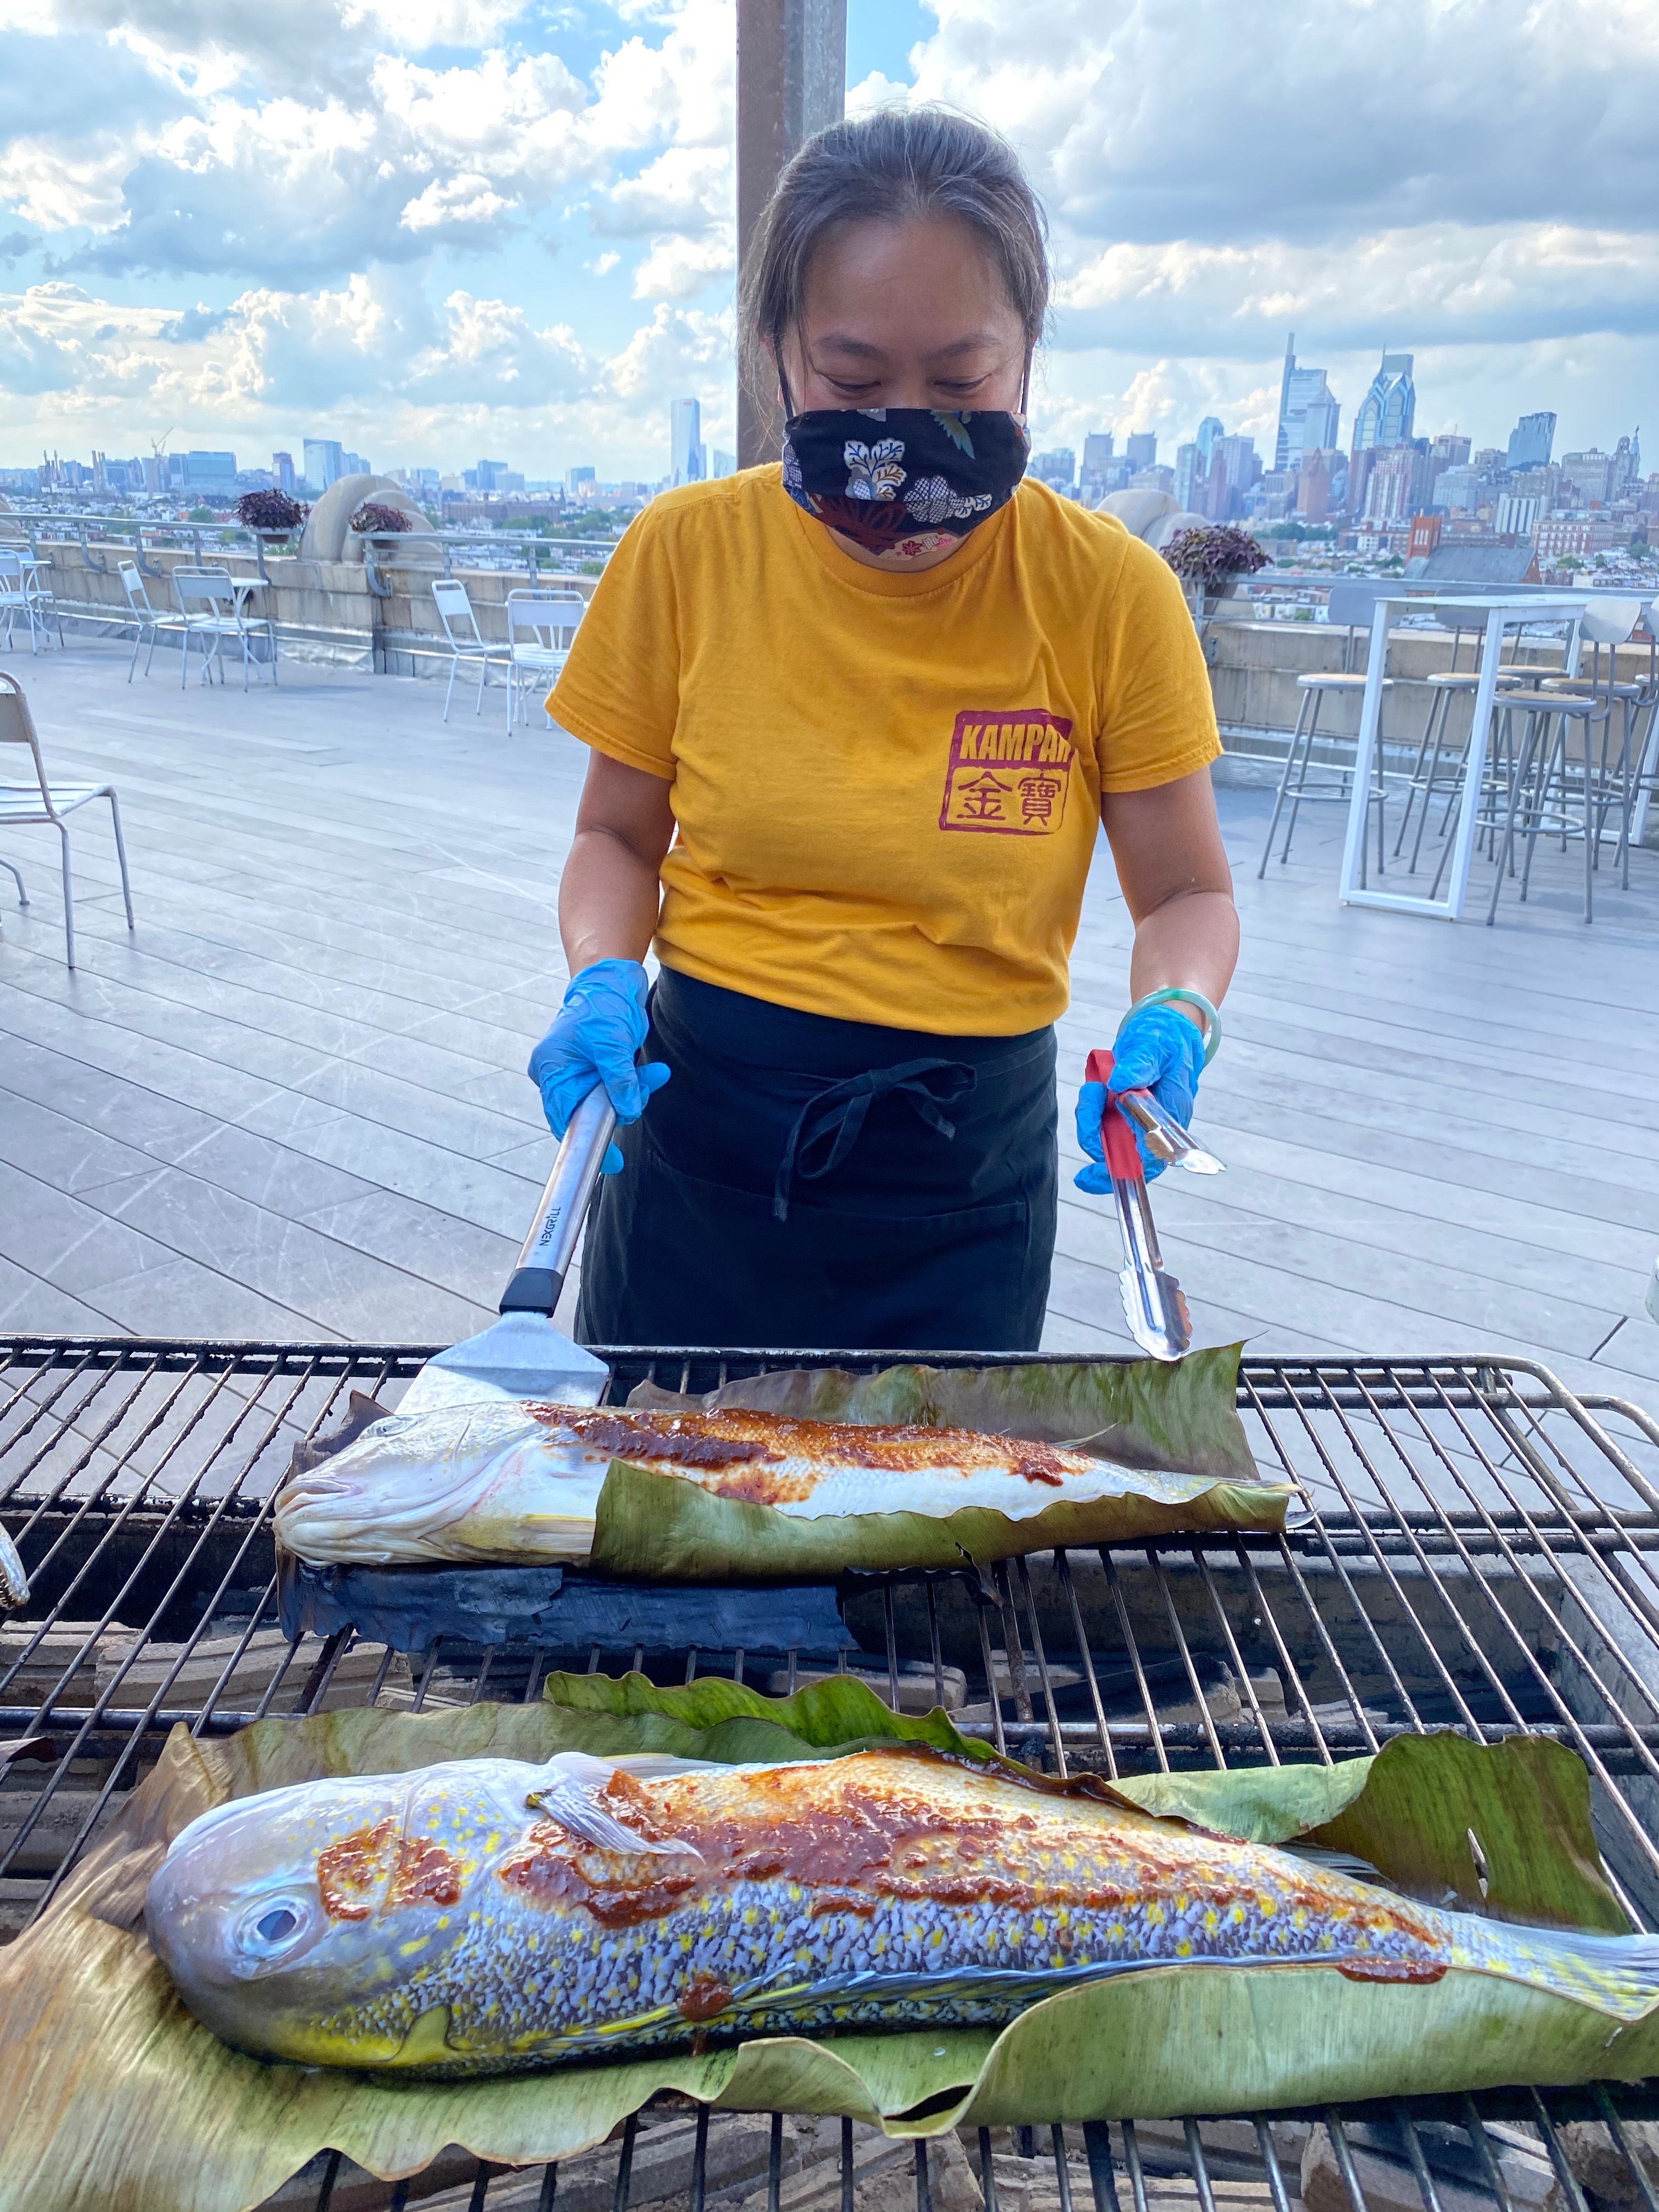 woman in yellow shirt standing at a grill cooking whole fish